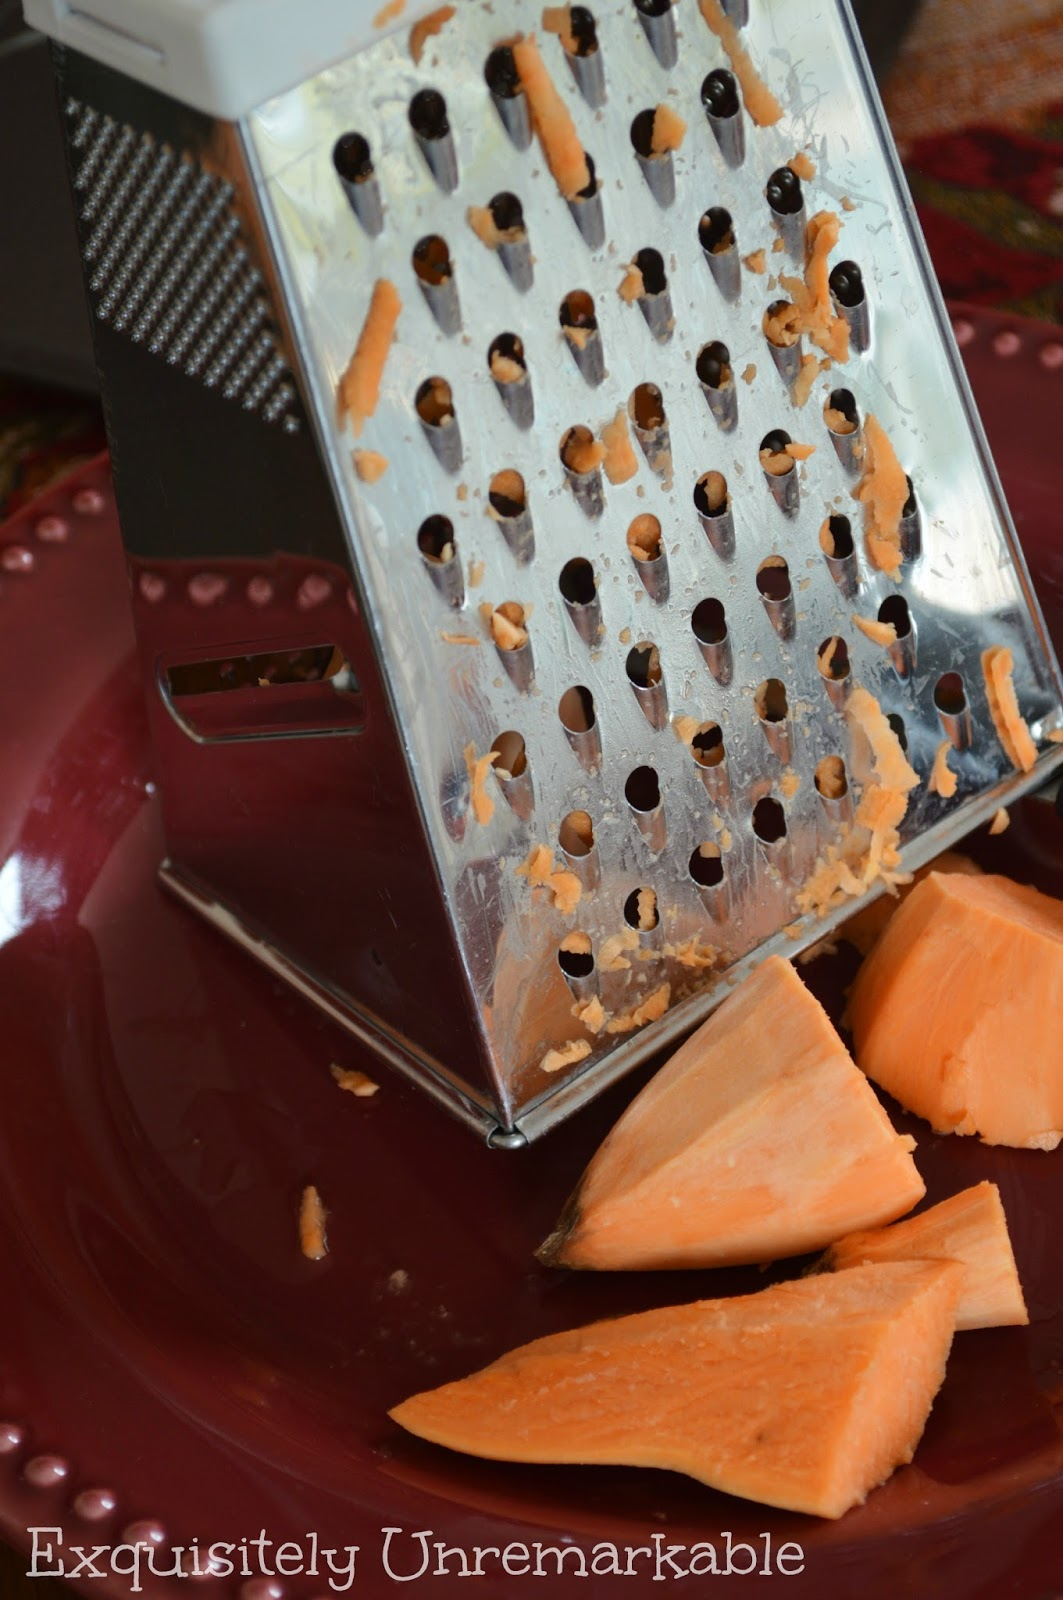 Shredding a sweet potato with a grater